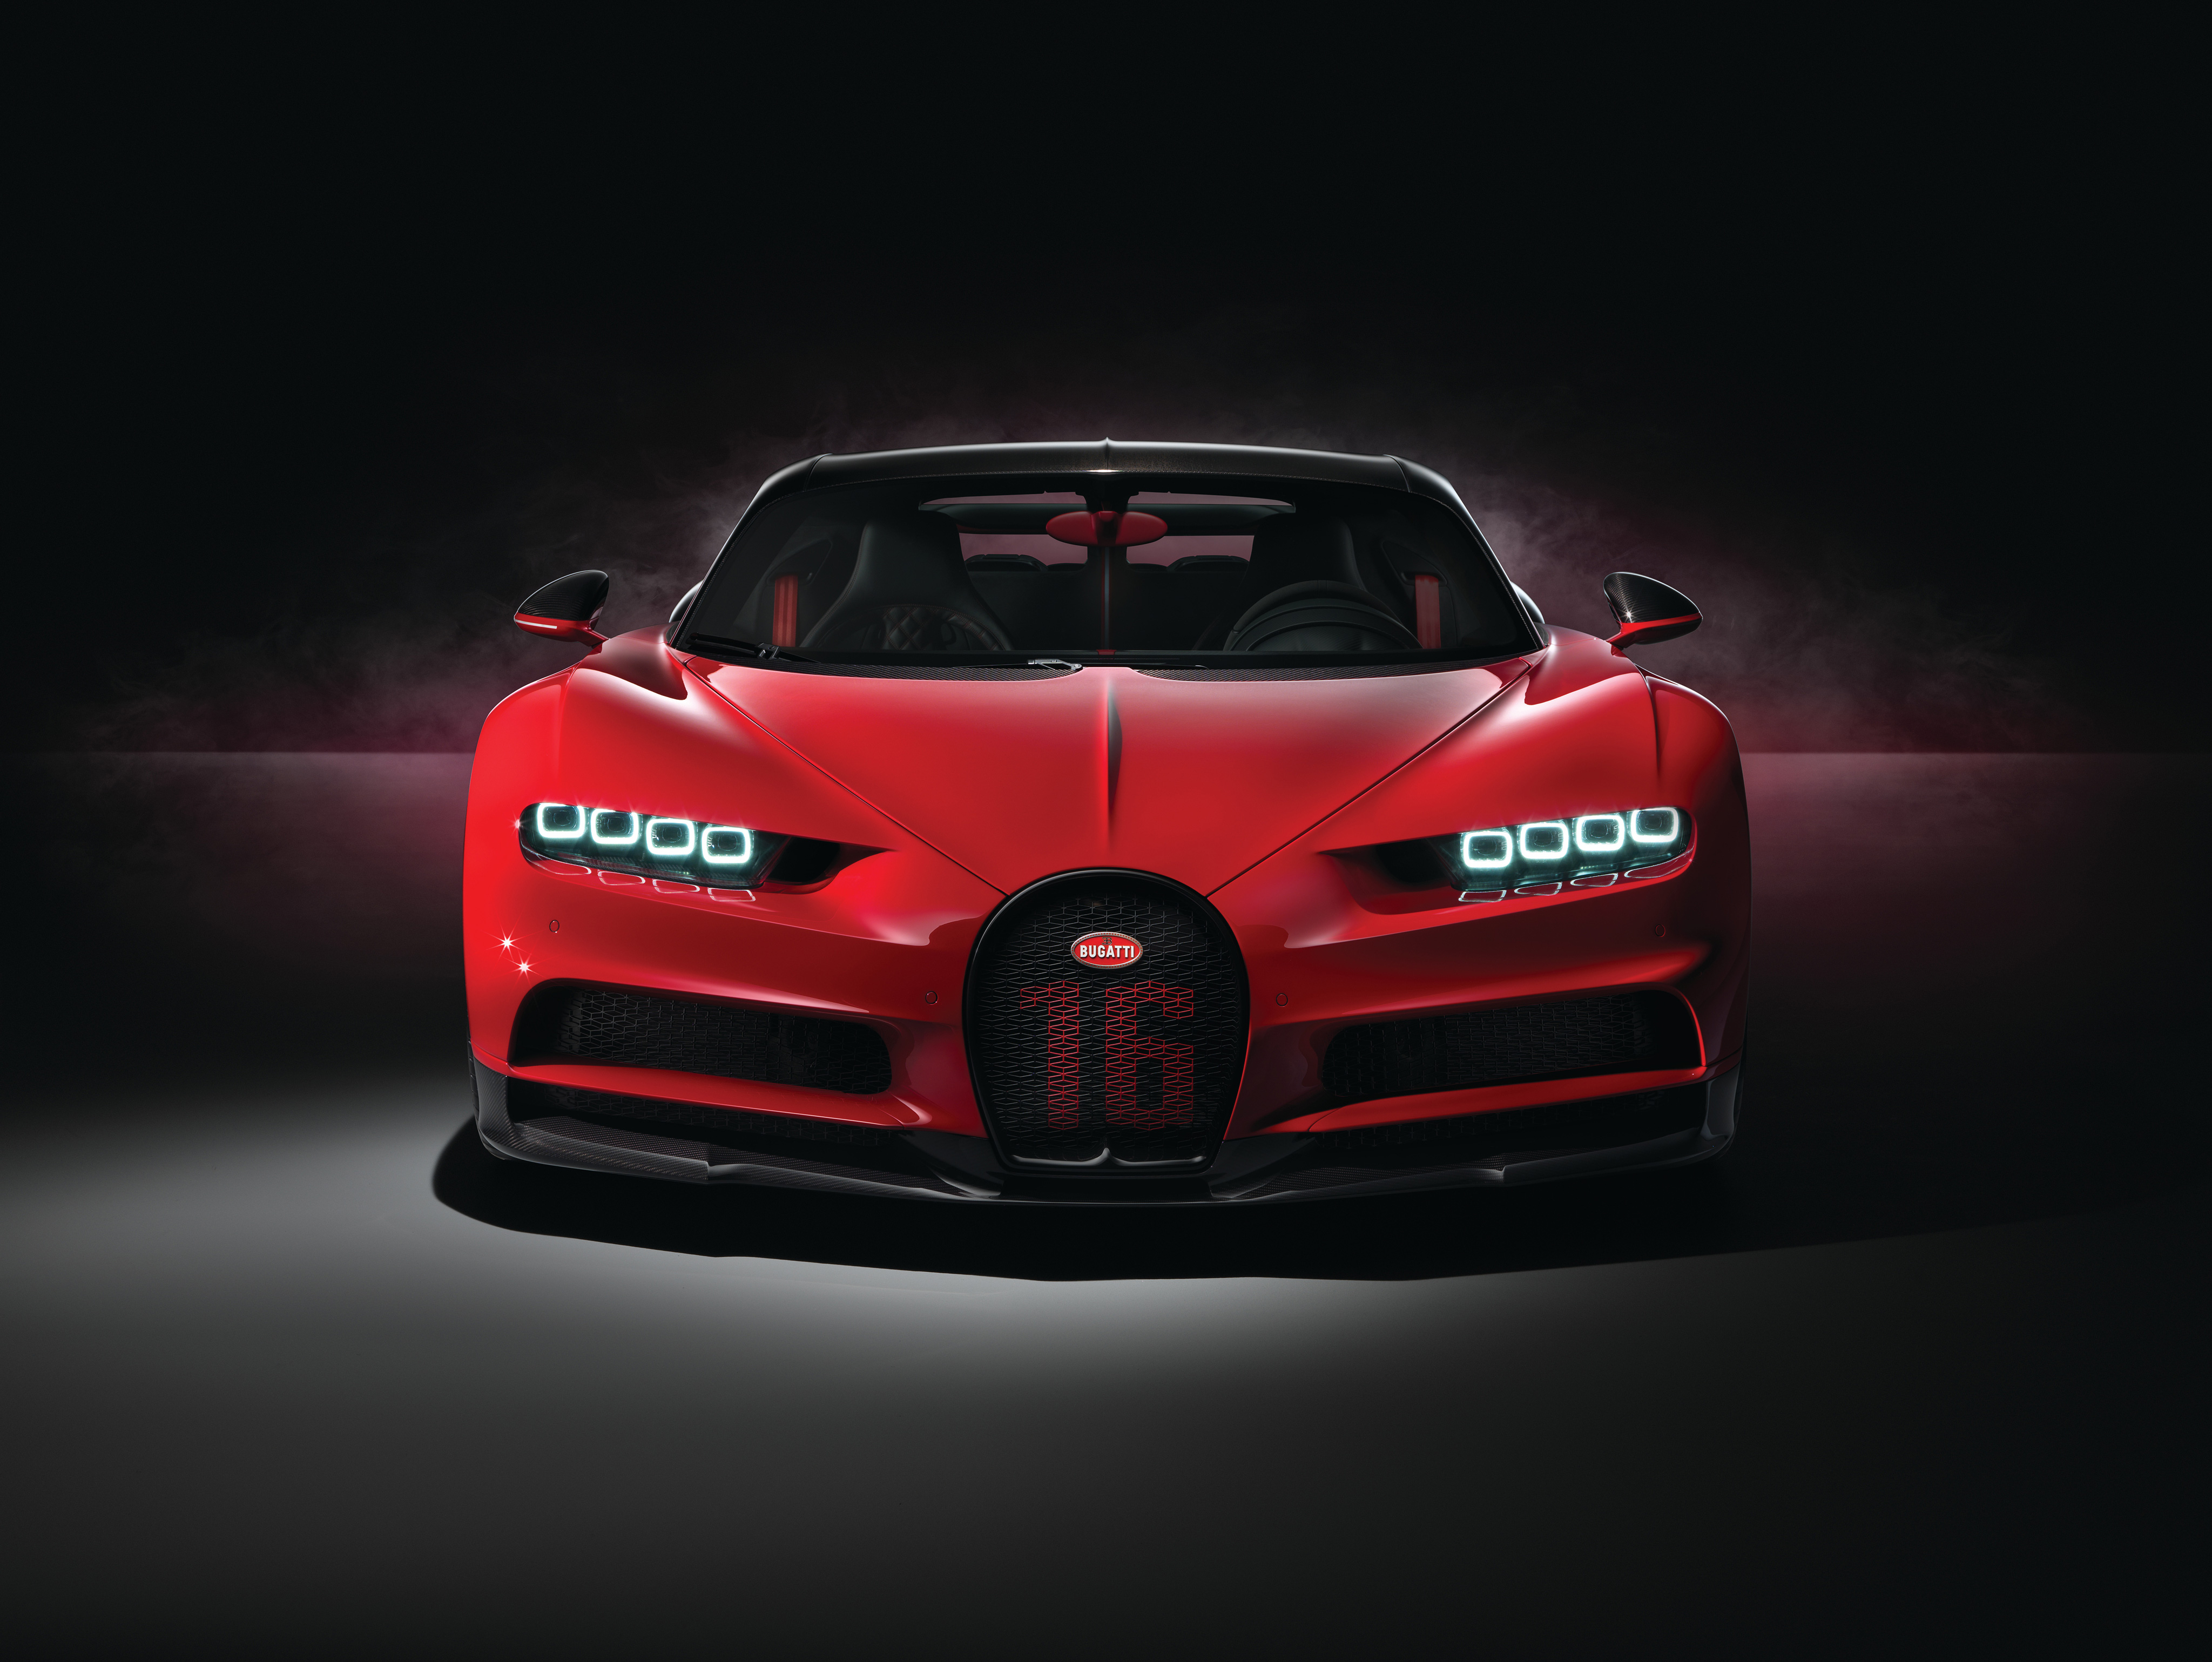 4k Wallpapers Of Anime Girls Red Bugatti Chiron Sport 2018 4k Hd Cars 4k Wallpapers